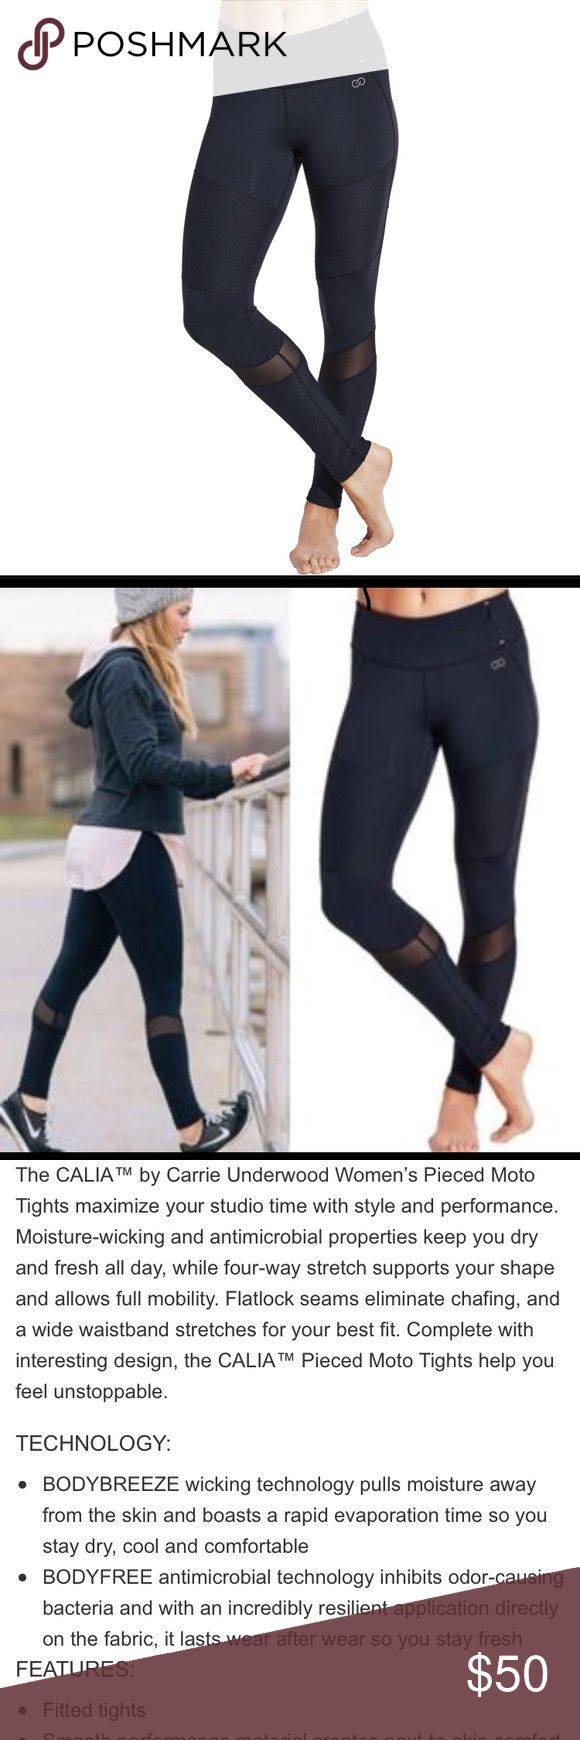 Carrie Underwood SOLDOUT Leggings in Black CALIA by carrie pieced moto leggings in black. Never worn - removed tickets with intention to wear but they're too big on me and are now sold out everywhere. CALIA by Carrie Underwood Pants Leggings